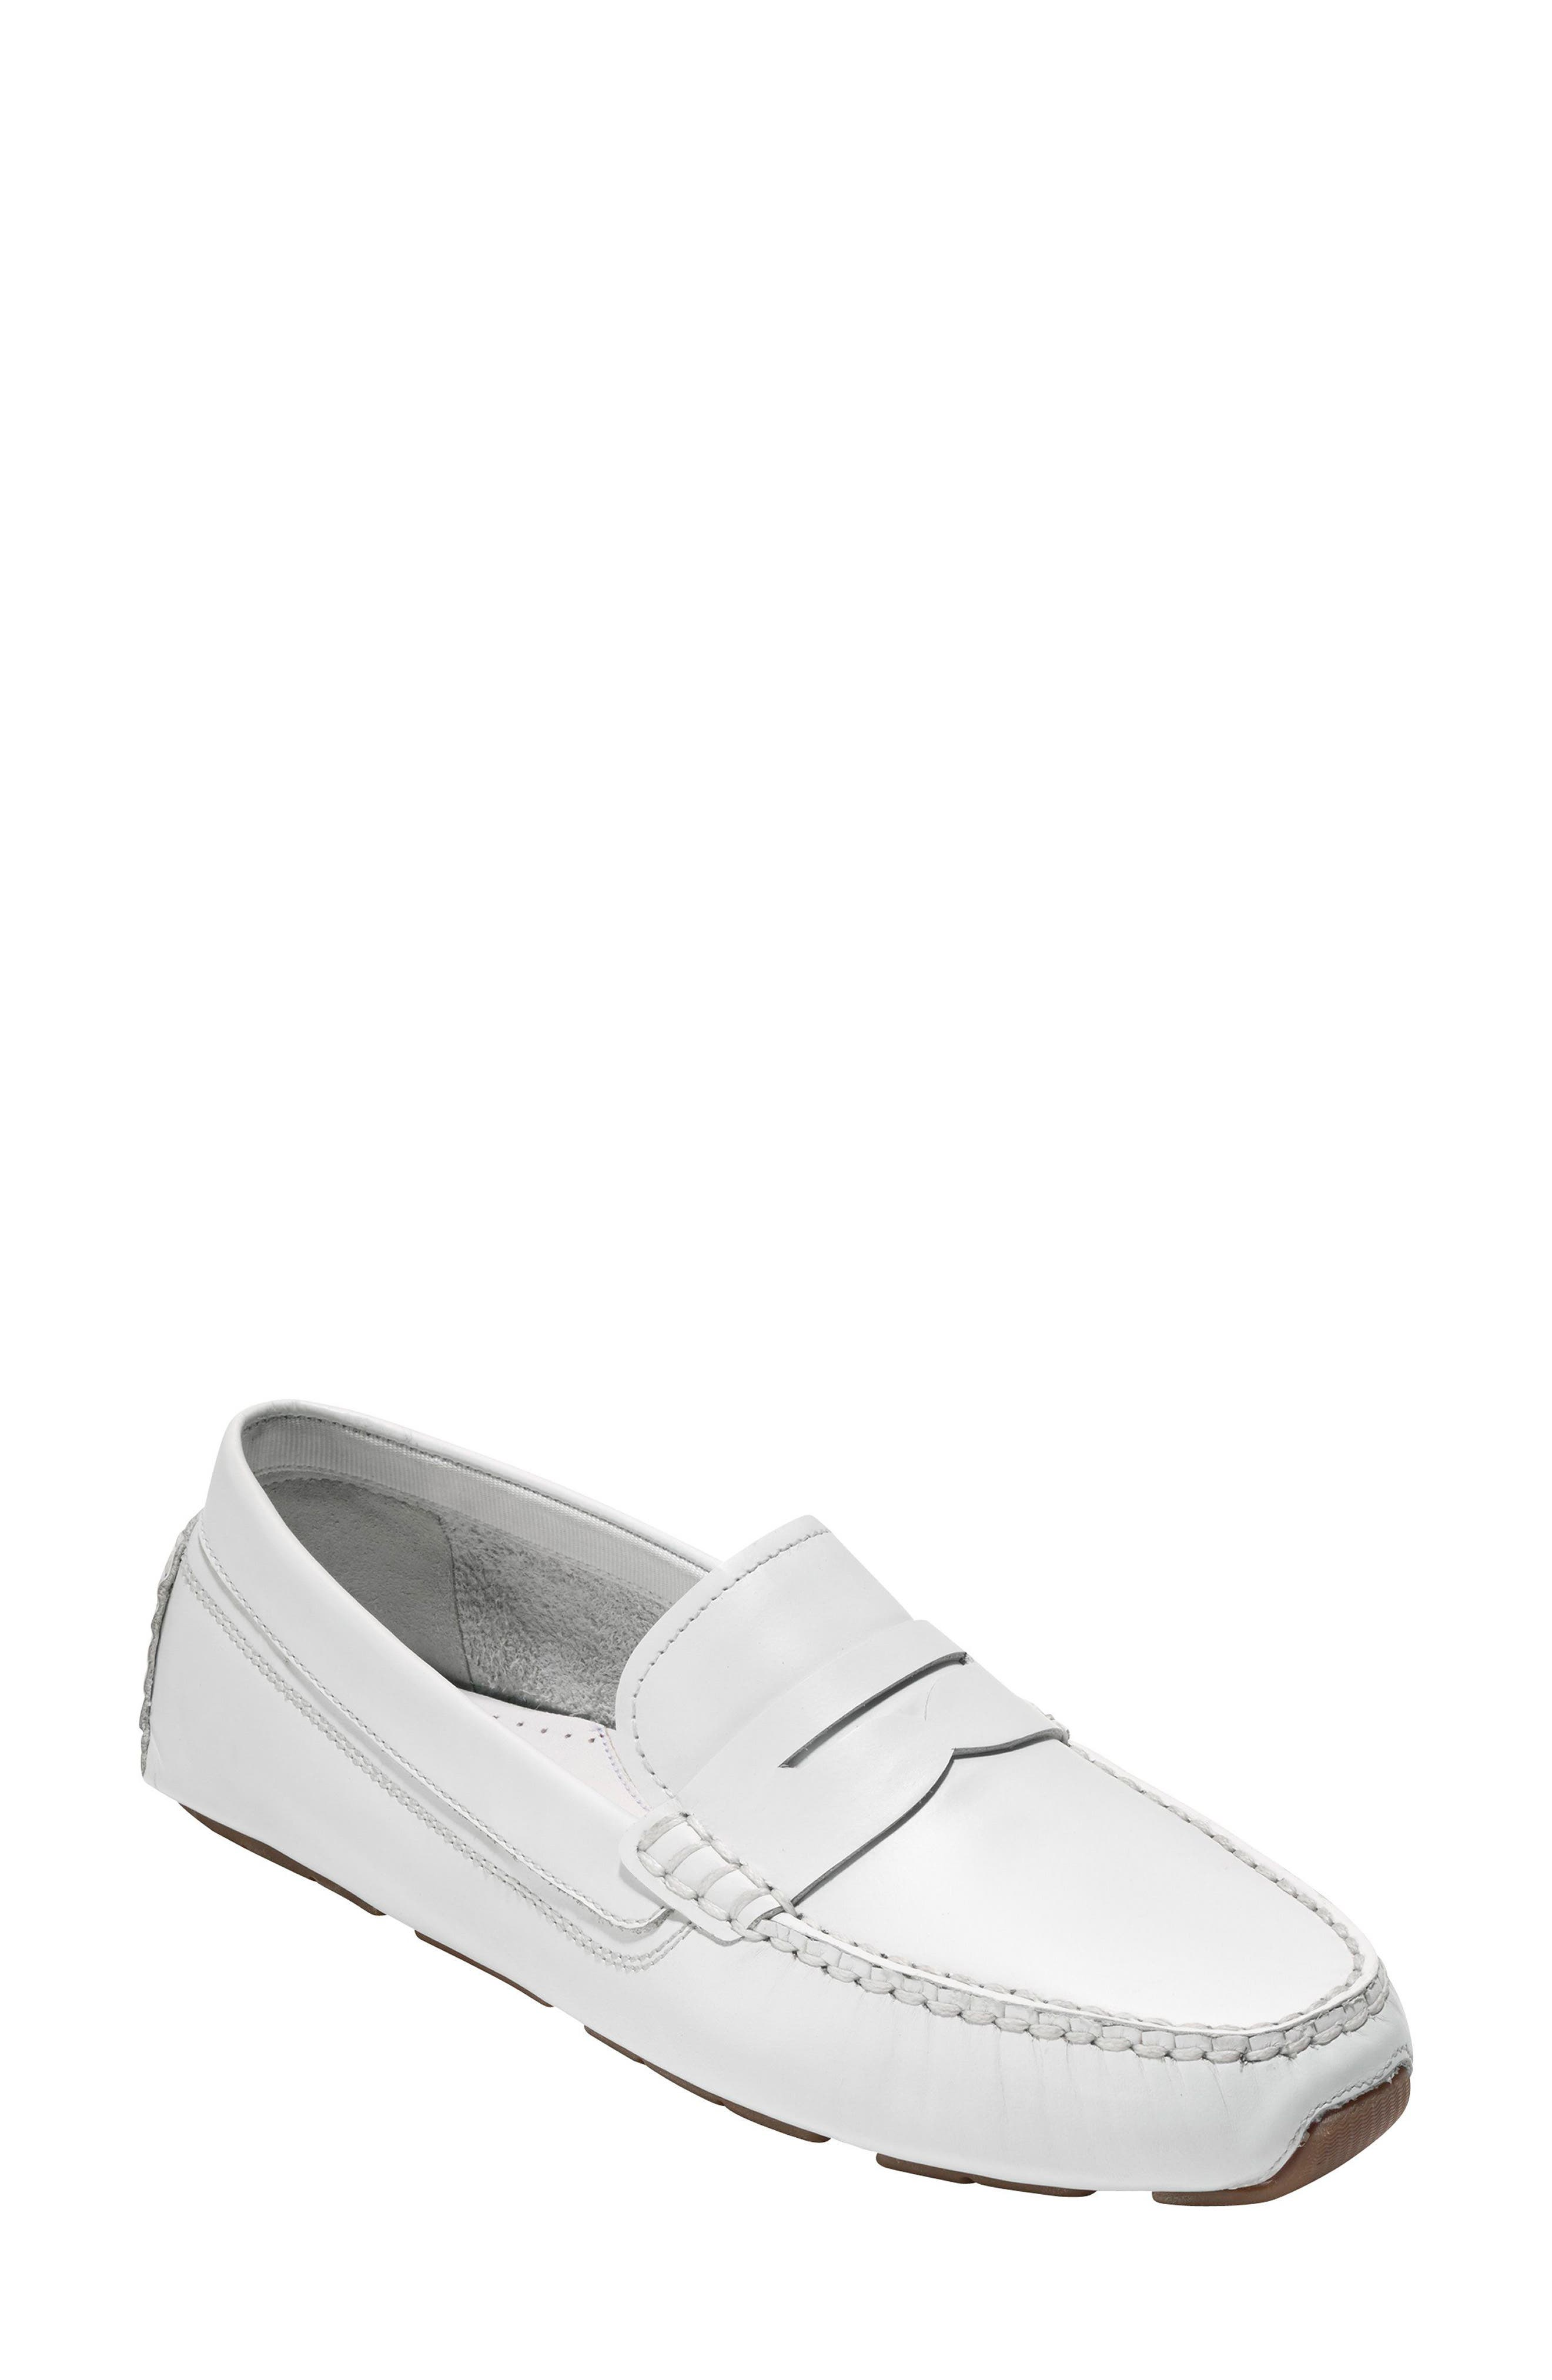 Rodeo Penny Driving Loafer,                         Main,                         color, Optic White Leather